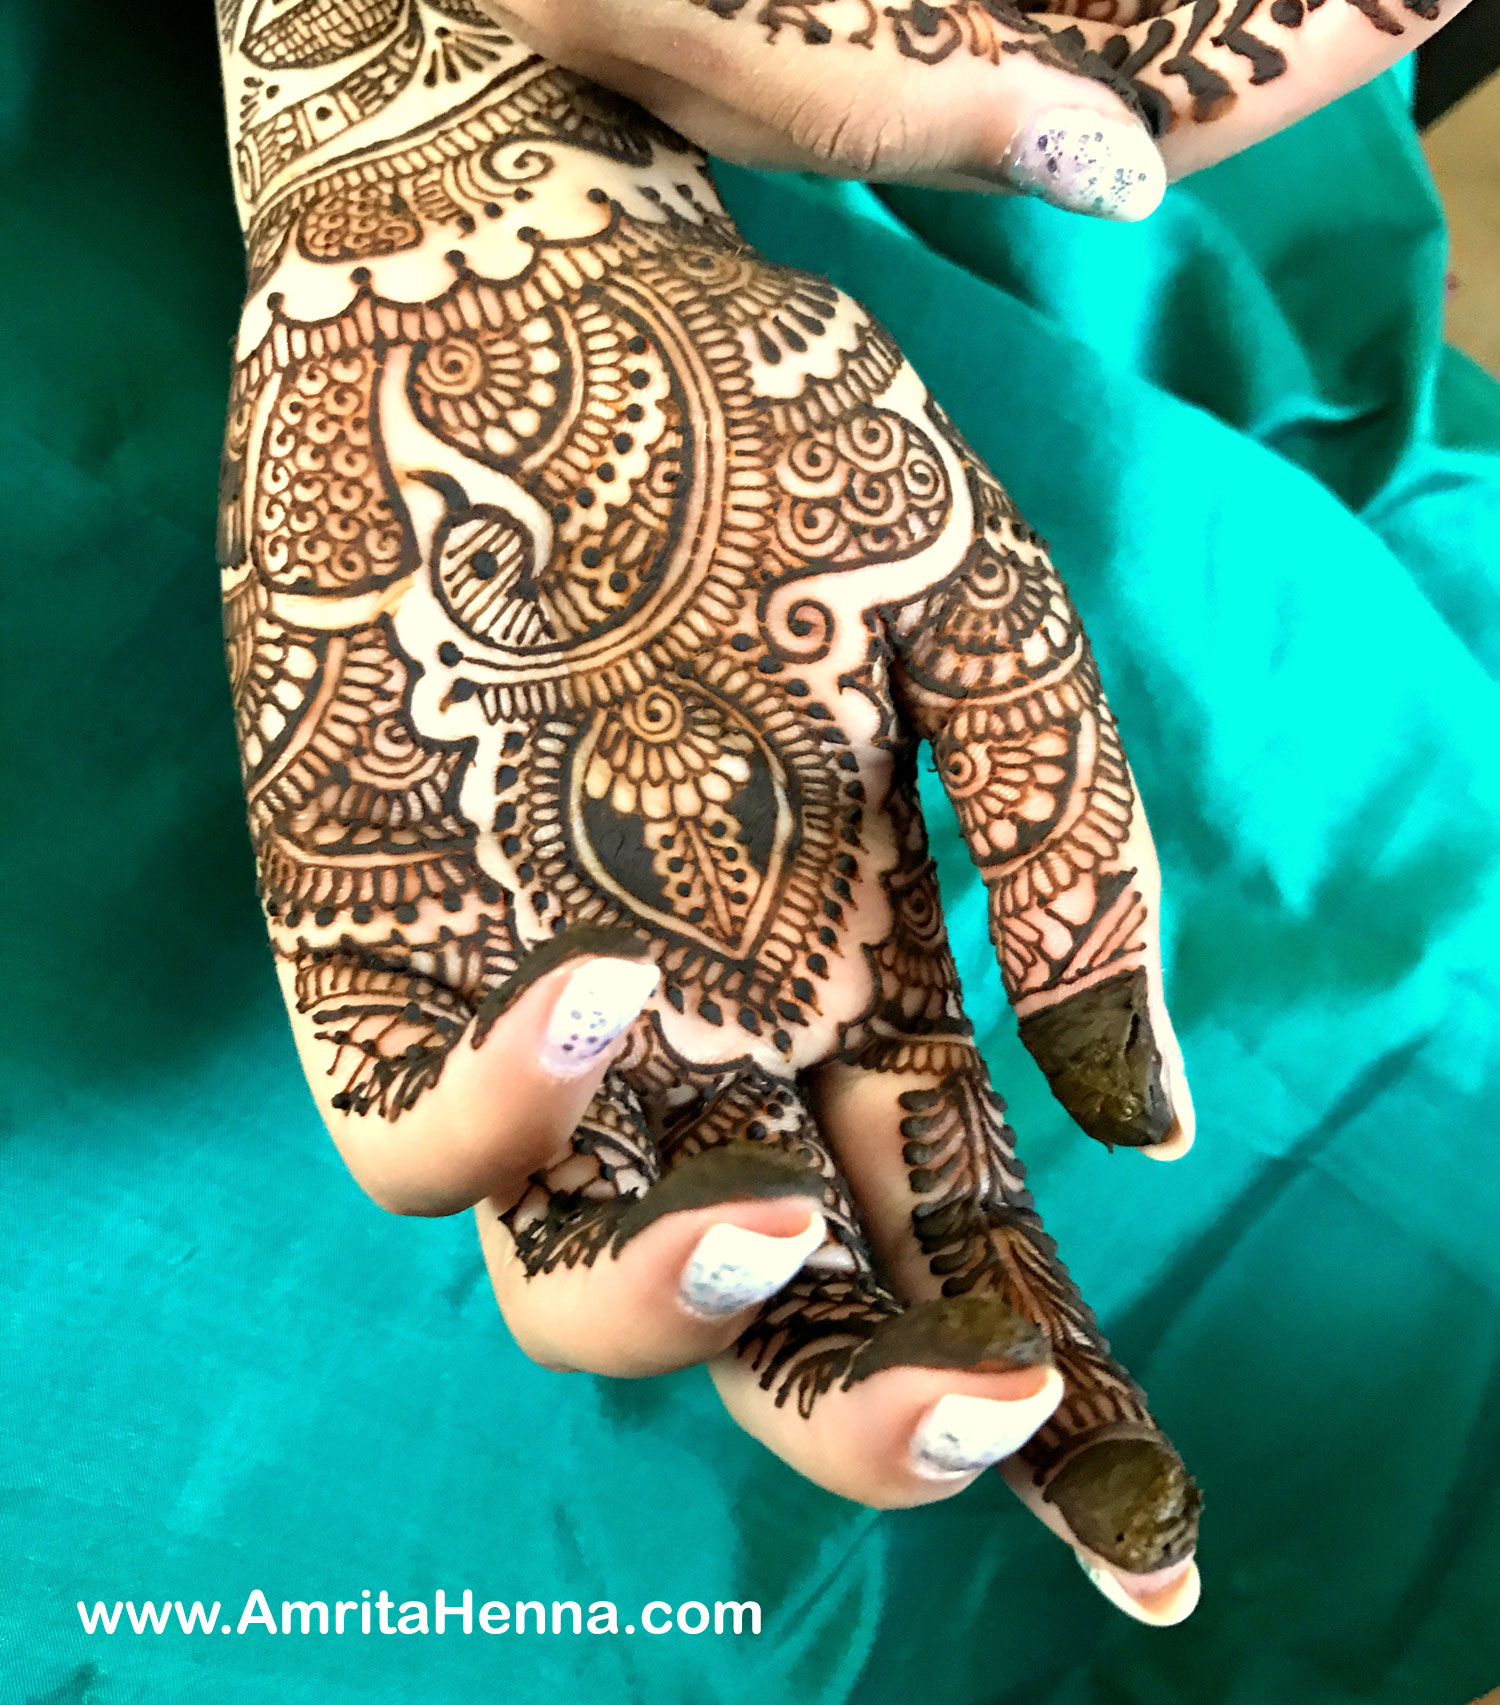 13 Unique Henna Designs Doing The Rounds This Wessing: TOP 10 LATEST UNIQUE HENNA DESIGNS FOR DIWALI